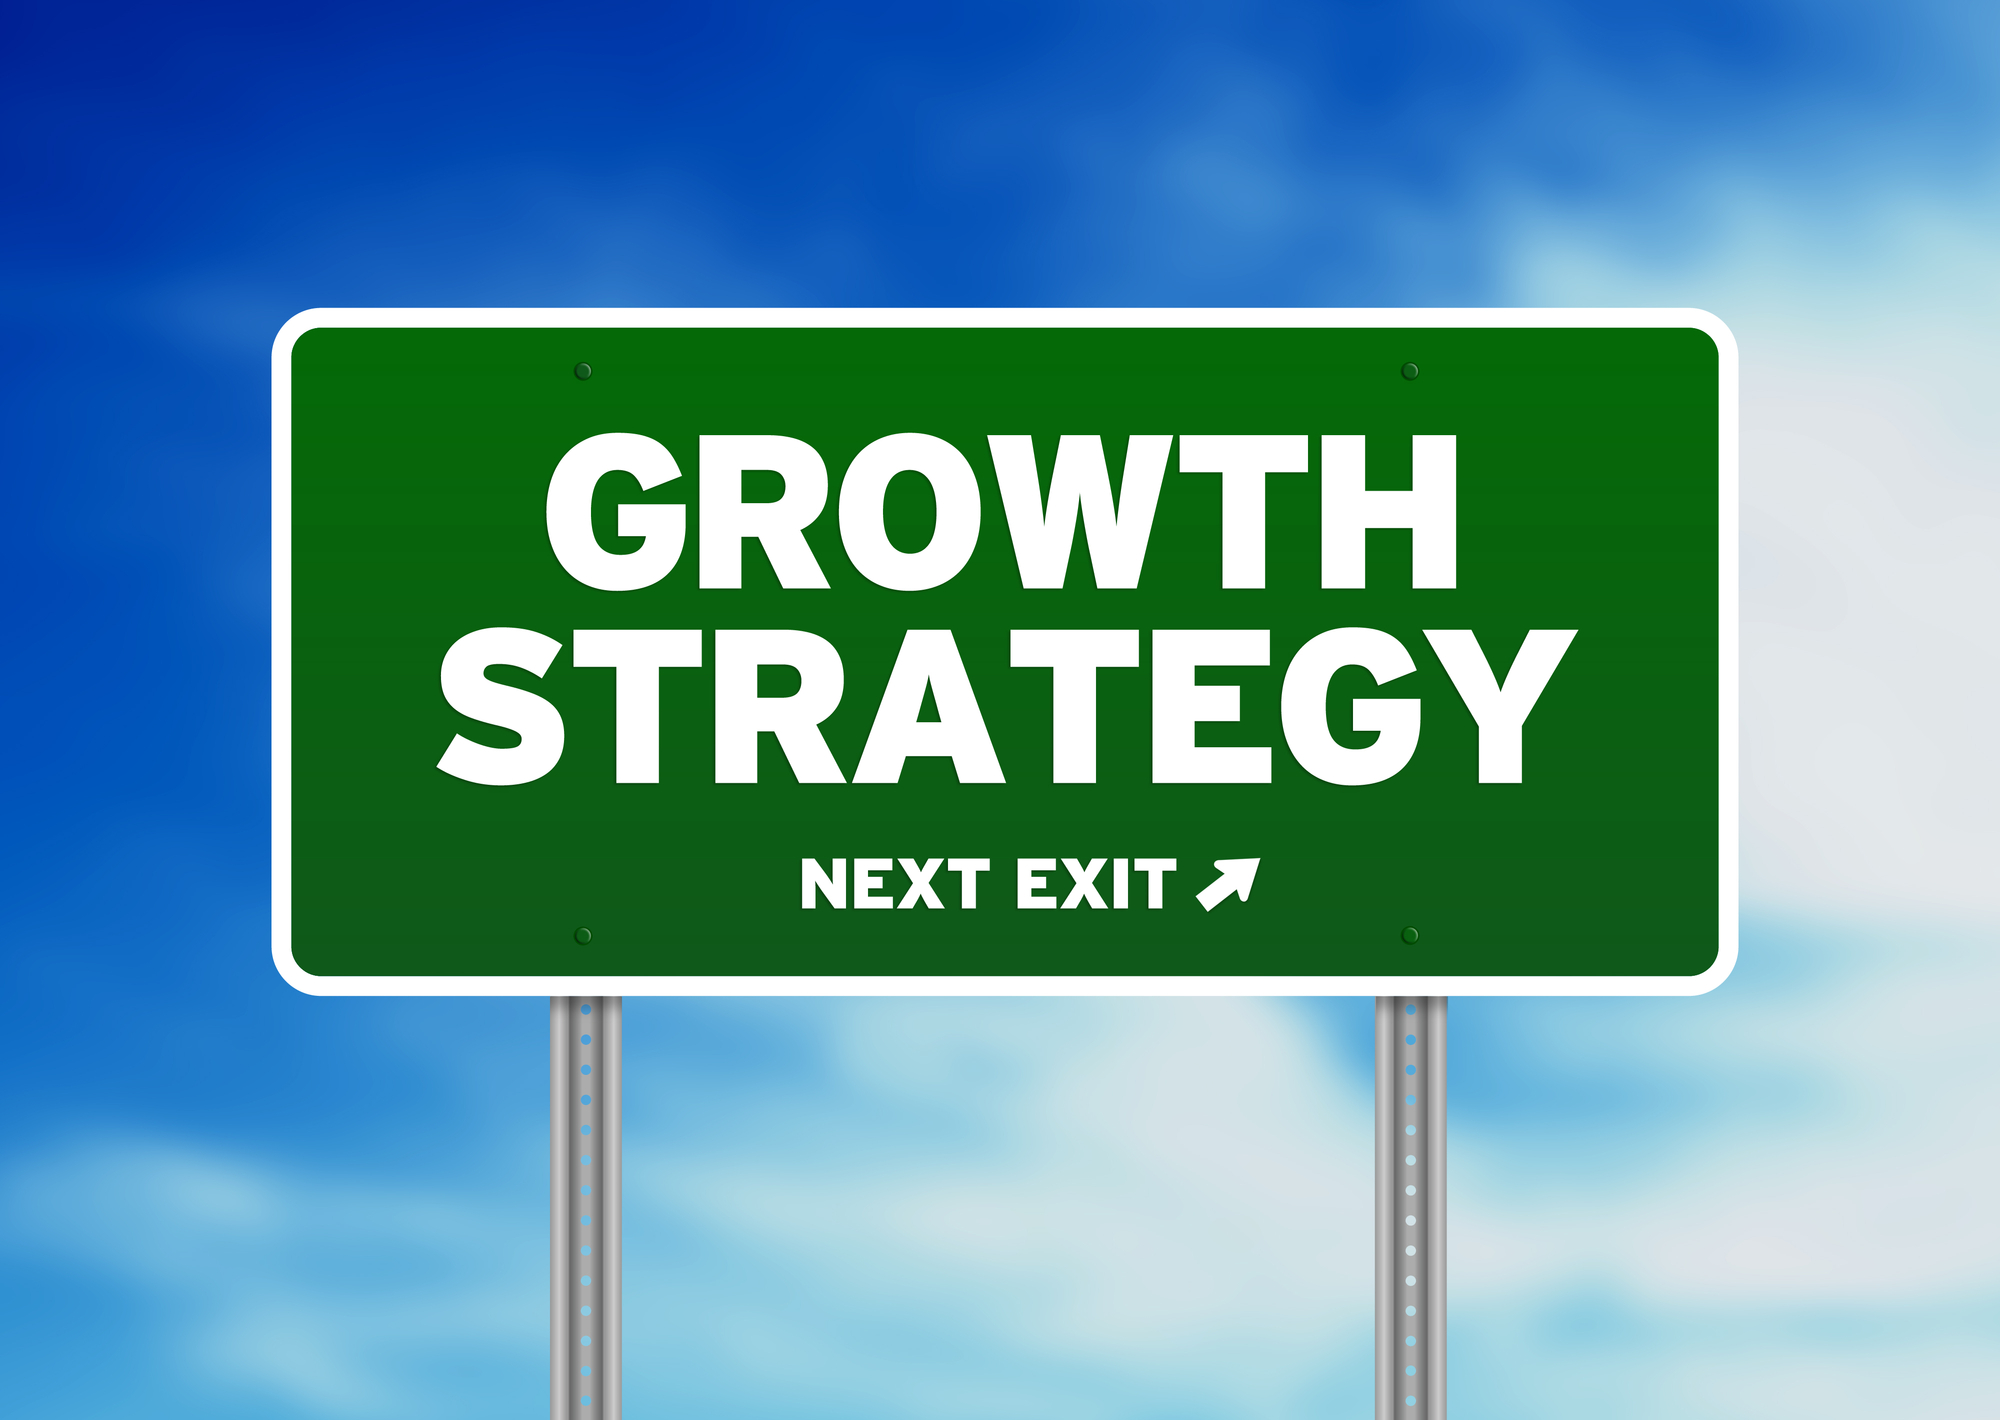 Green Growth Strategy highway sign on Cloud Background.